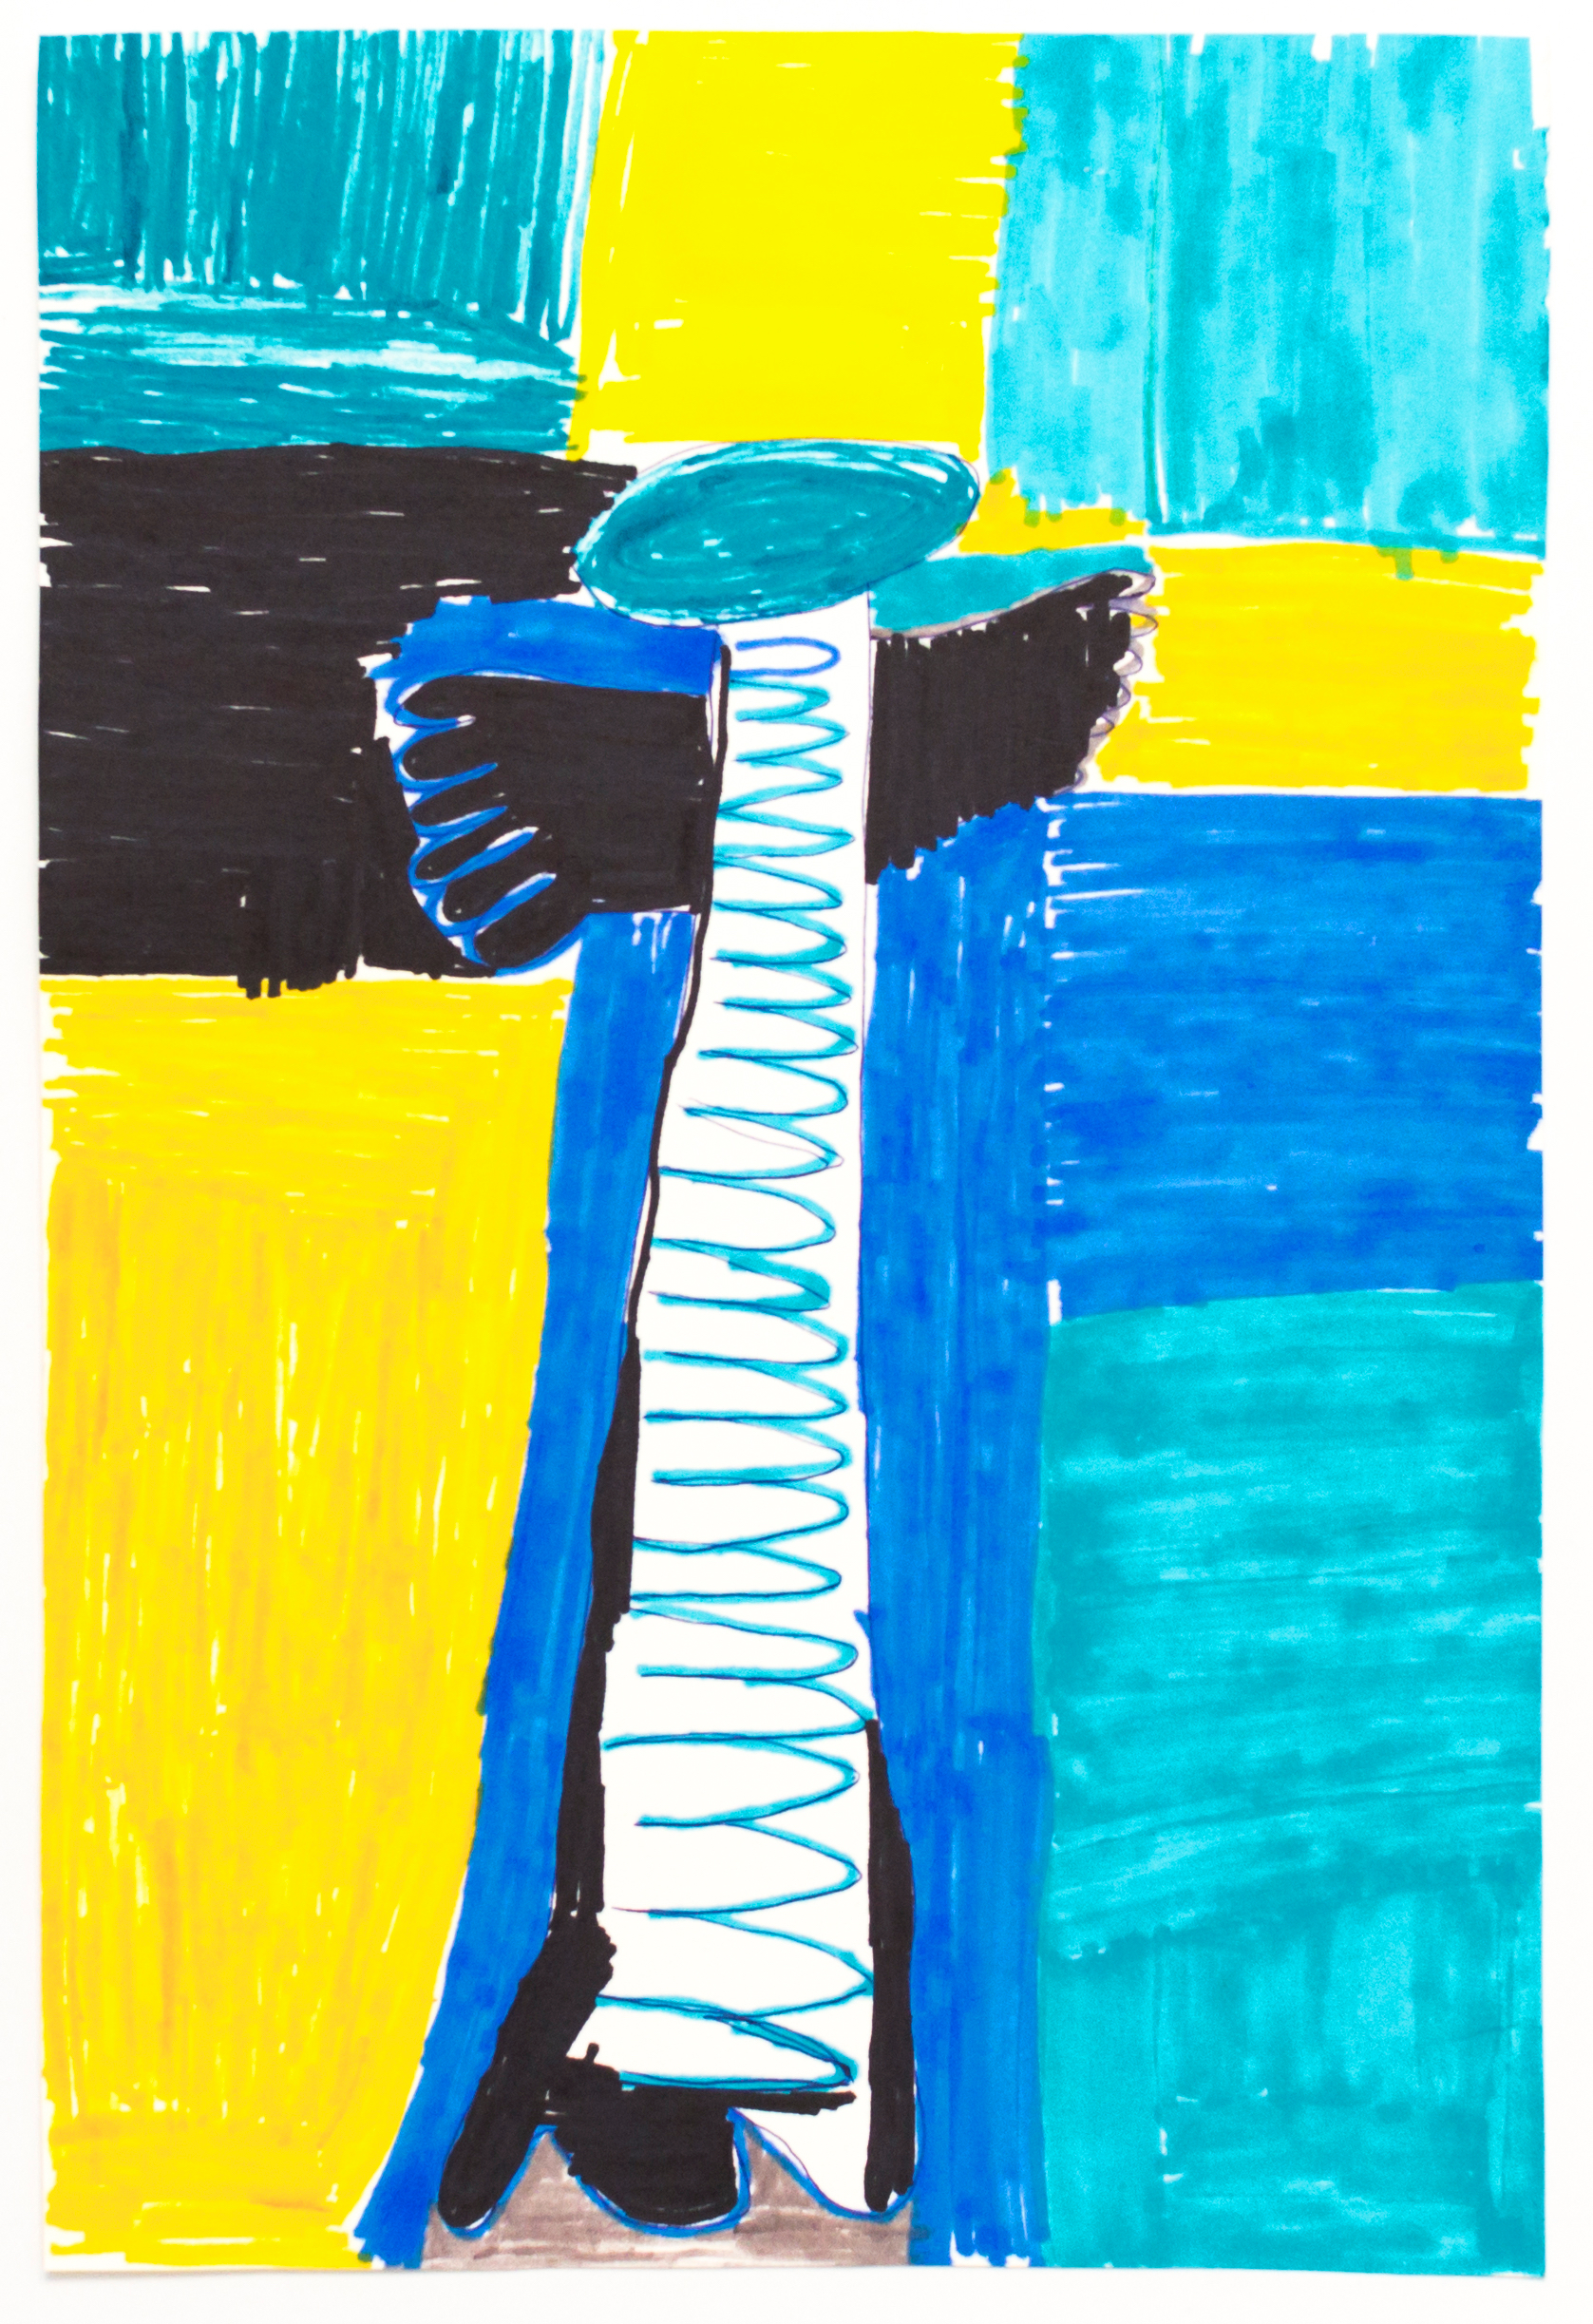 Chris Corr-Barberis, Untitled (CCB 022), 2018, Work on paper, 7.5 x 11 inches